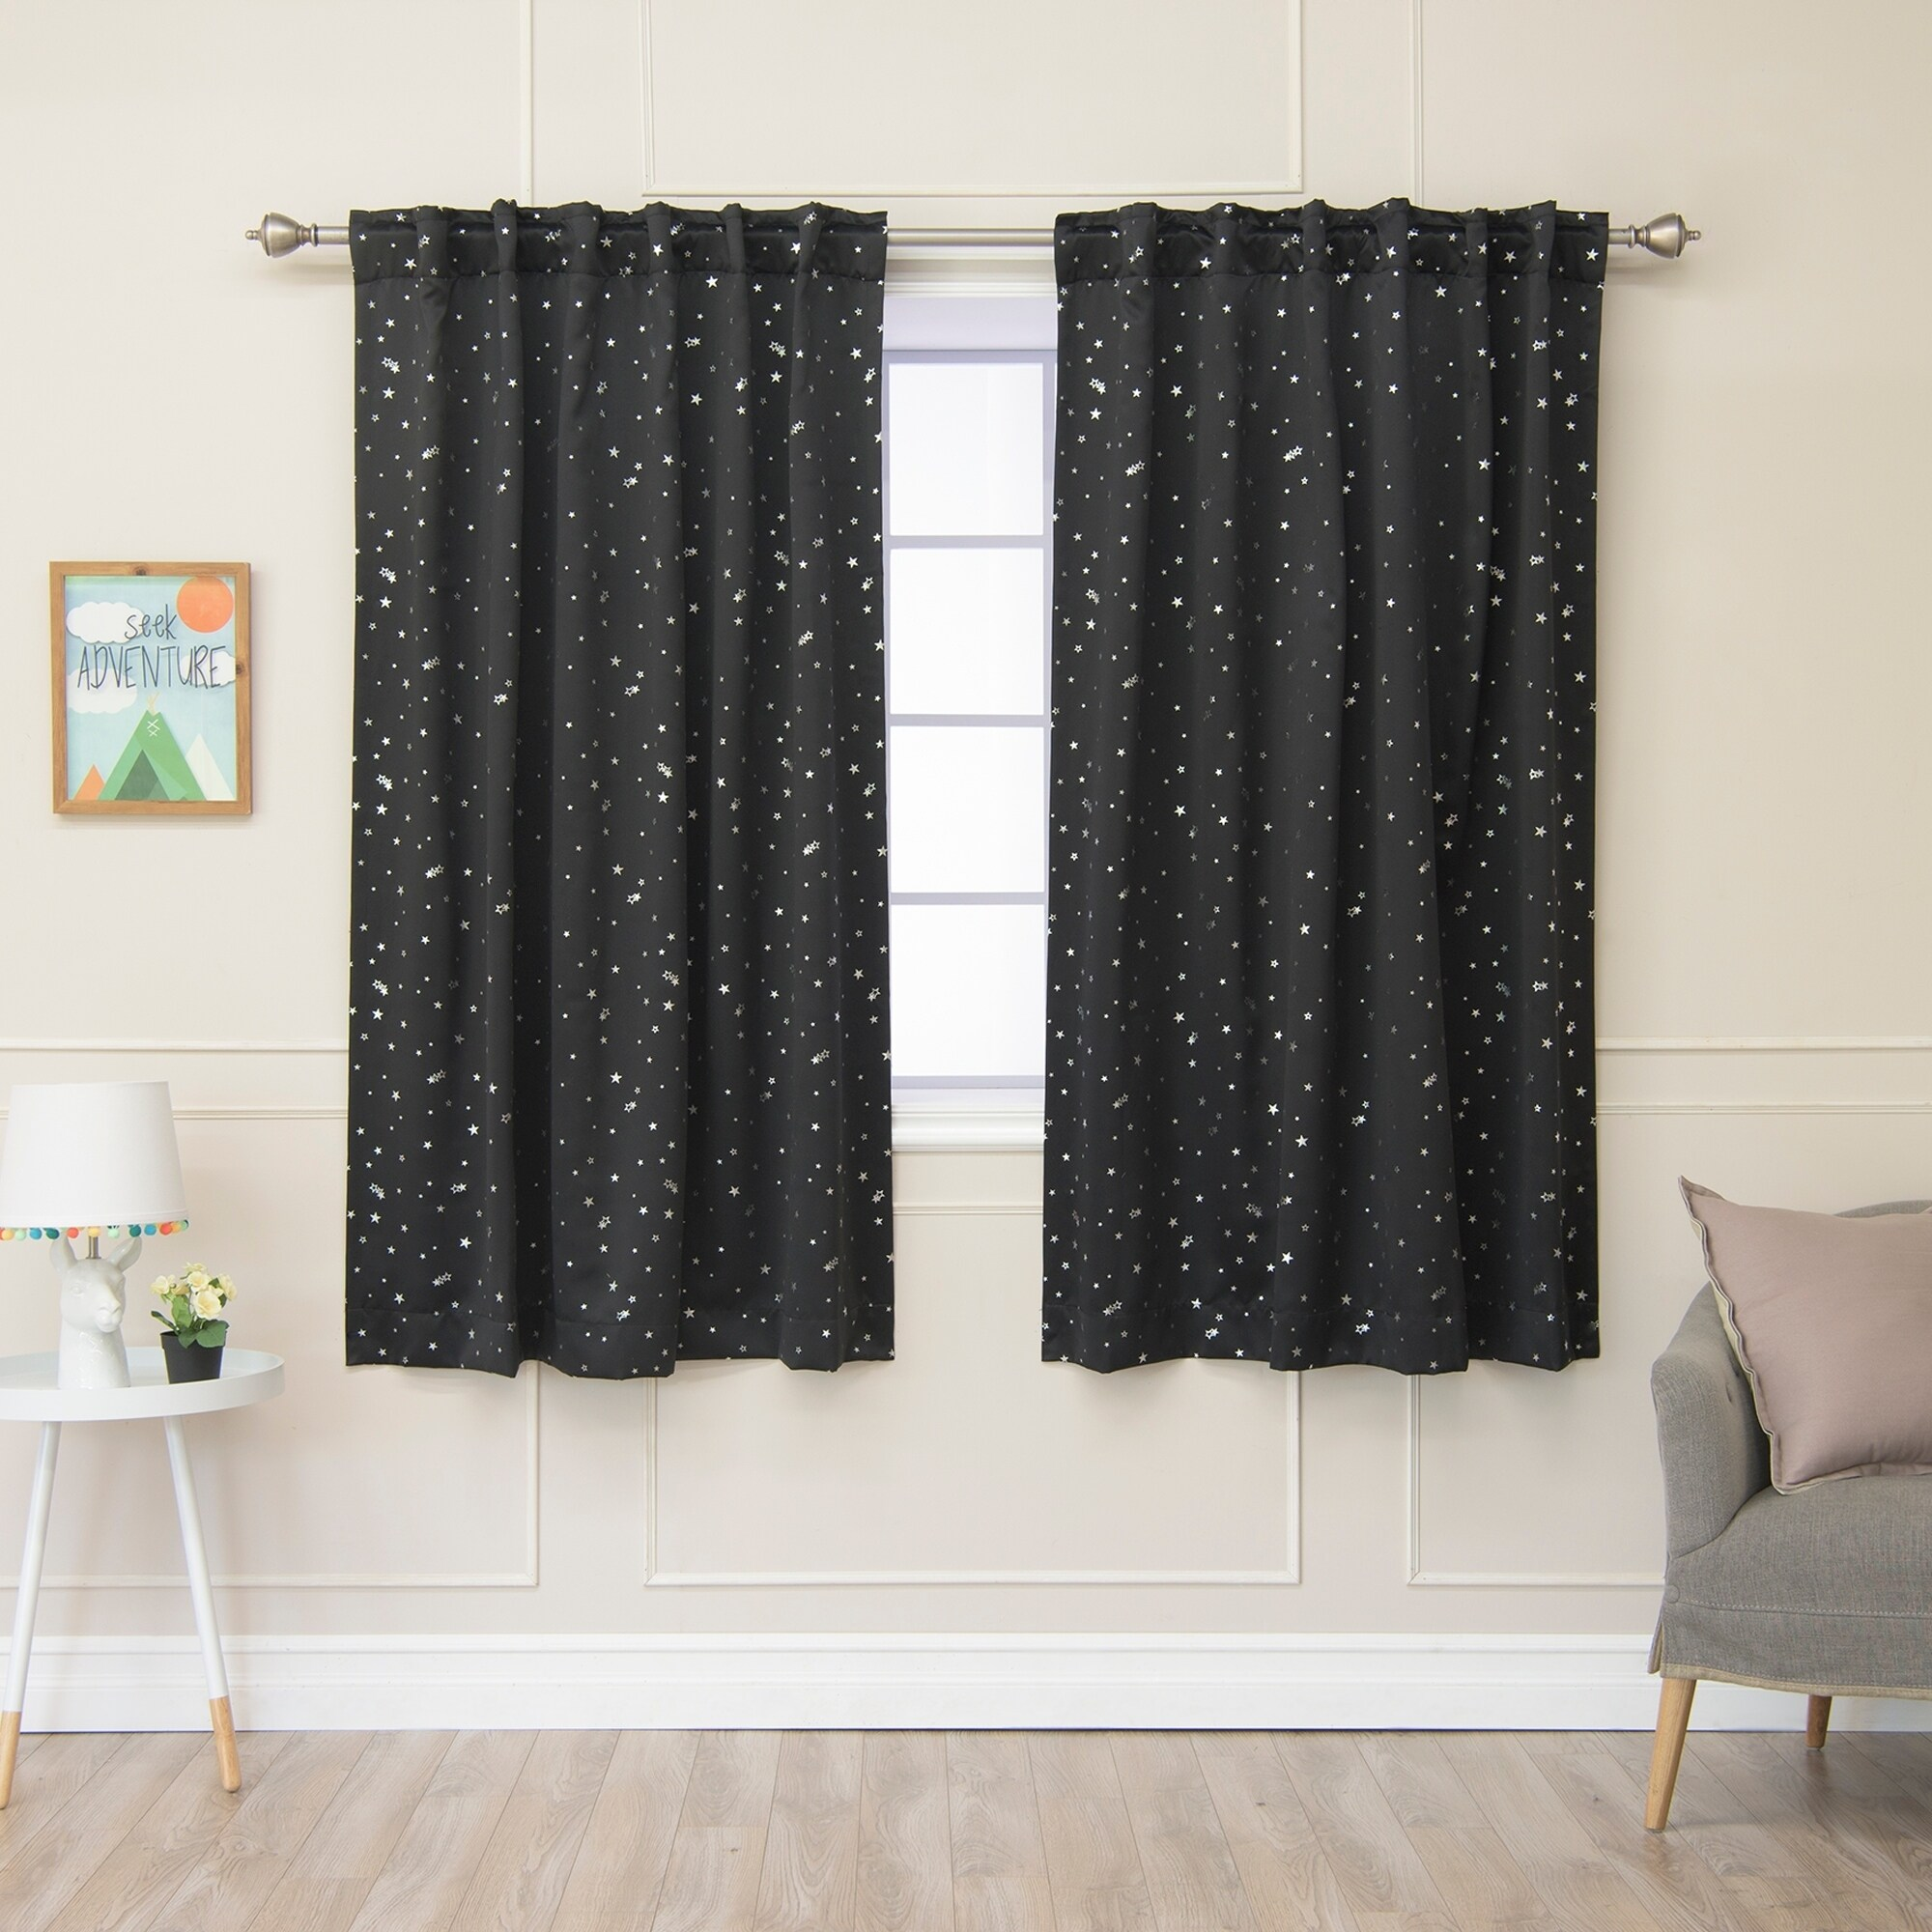 Shop Aurora Home Star Struck Insulated Thermal Blackout 63 Inch Curtain Panel Pair